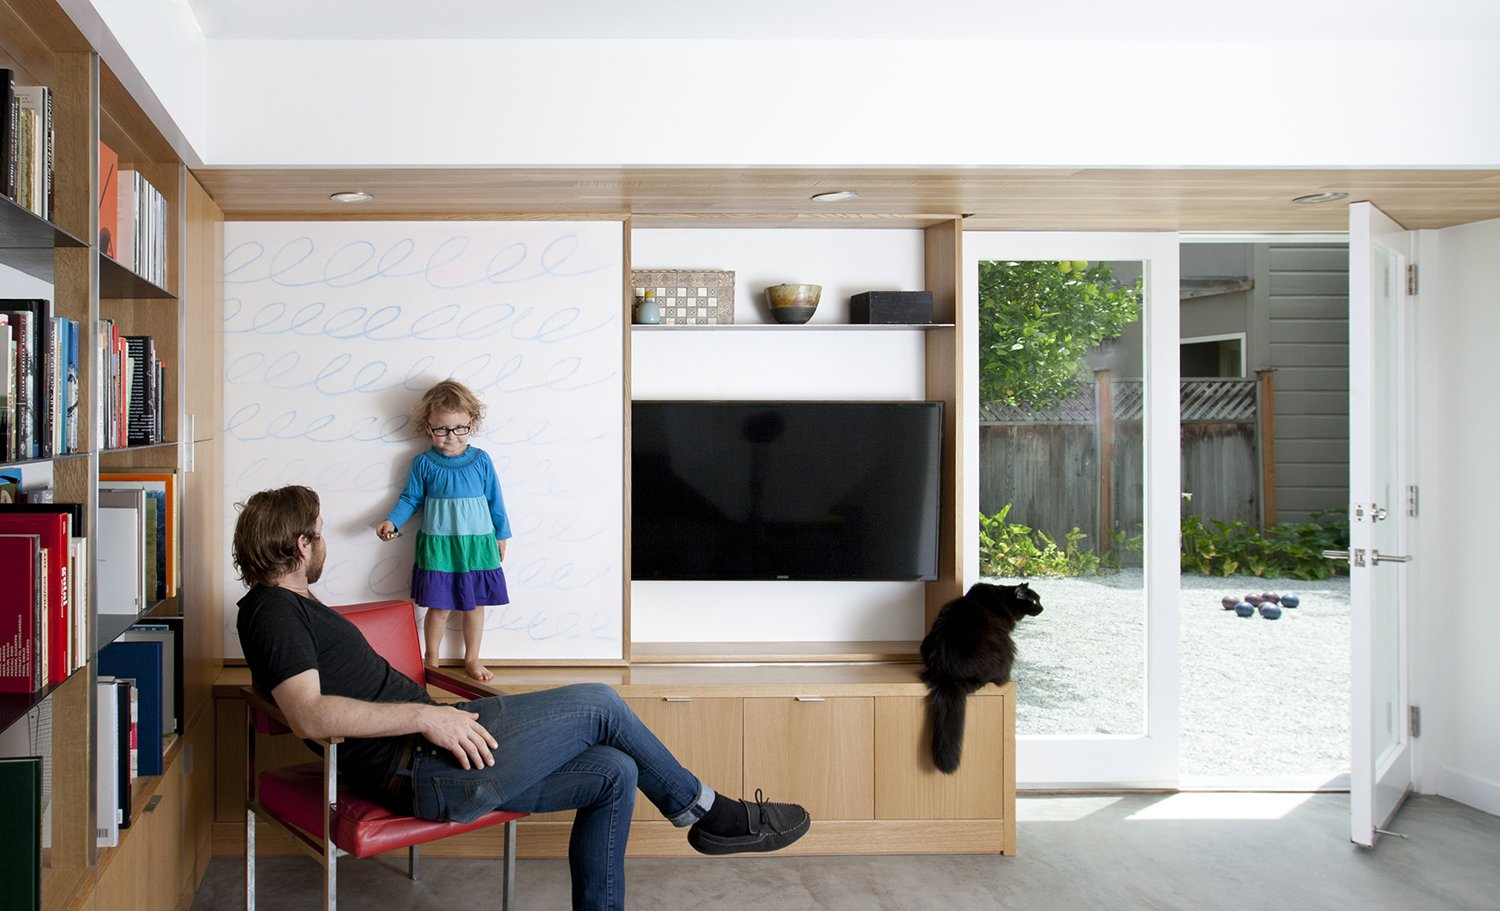 "The sliding wall panel is seen in its open position. In addition to several design elements serving multiple functions, great care was taken to develop a compelling design within the constraints of existing conditions. The remodel was confined to the existing building envelope, leaving the original footprint unchanged, but adding about 650 square feet of habitable space in the process. ""The plans,"" explains Paré-Mayer, ""respected existing structural conditions where possible to save on cost."" The finished concrete floor is, in fact, the structural slab, an efficient choice from a cost and materials perspective. The existing footings, which were wider than the framed interior walls, were kept intact in their original condition and location. The team was able to cleverly design around them by building usable closed storage to conceal the protruding foundation, as seen at the base of the media built-in.  KS Mission by Sarah Akkoush"